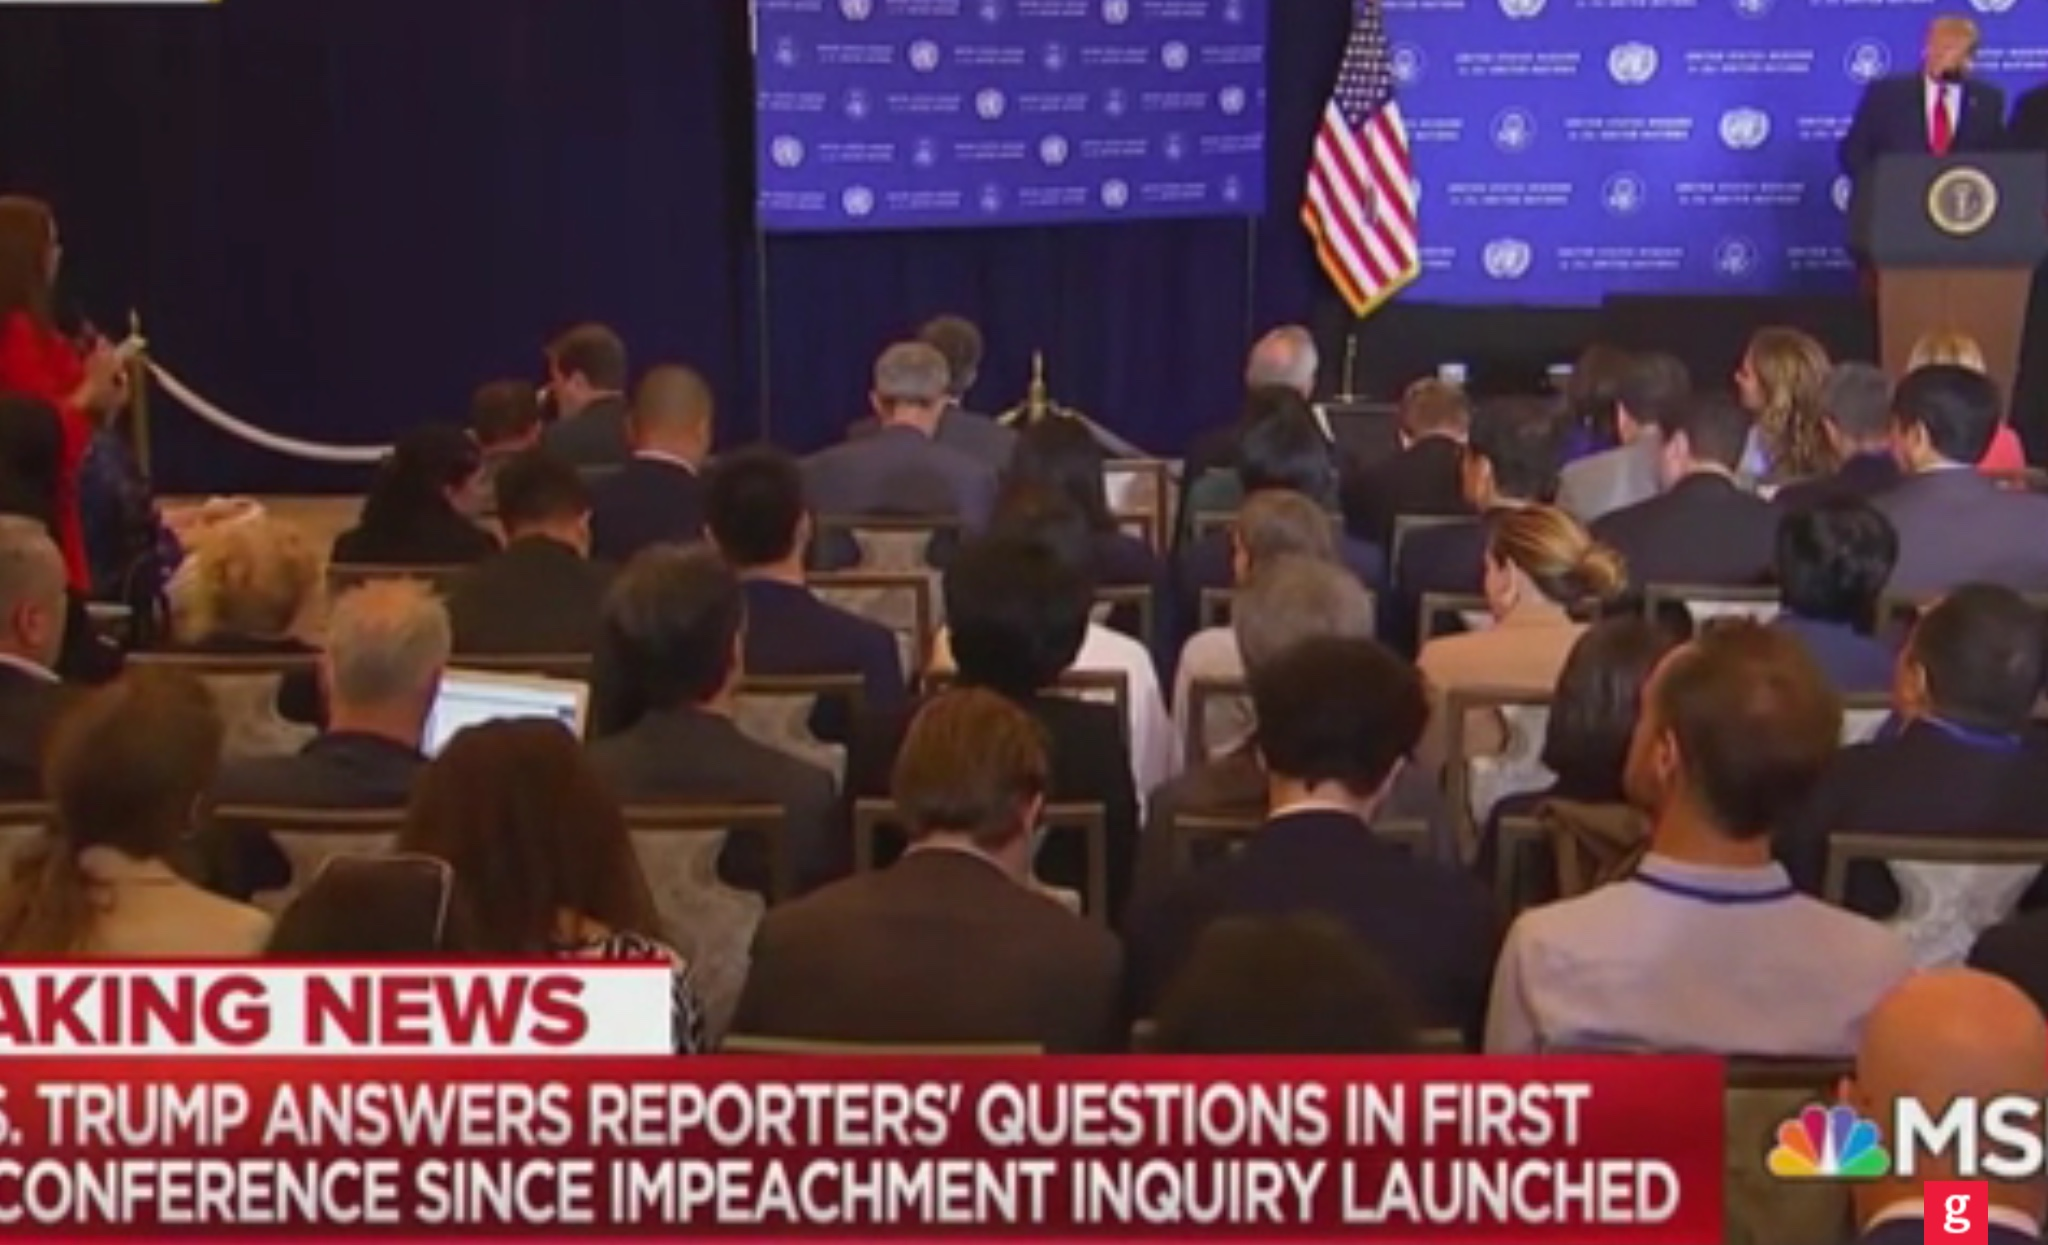 President Donald Trump holds a news conference in New York City, Sept. 25, 2019. MSNBC screenshot